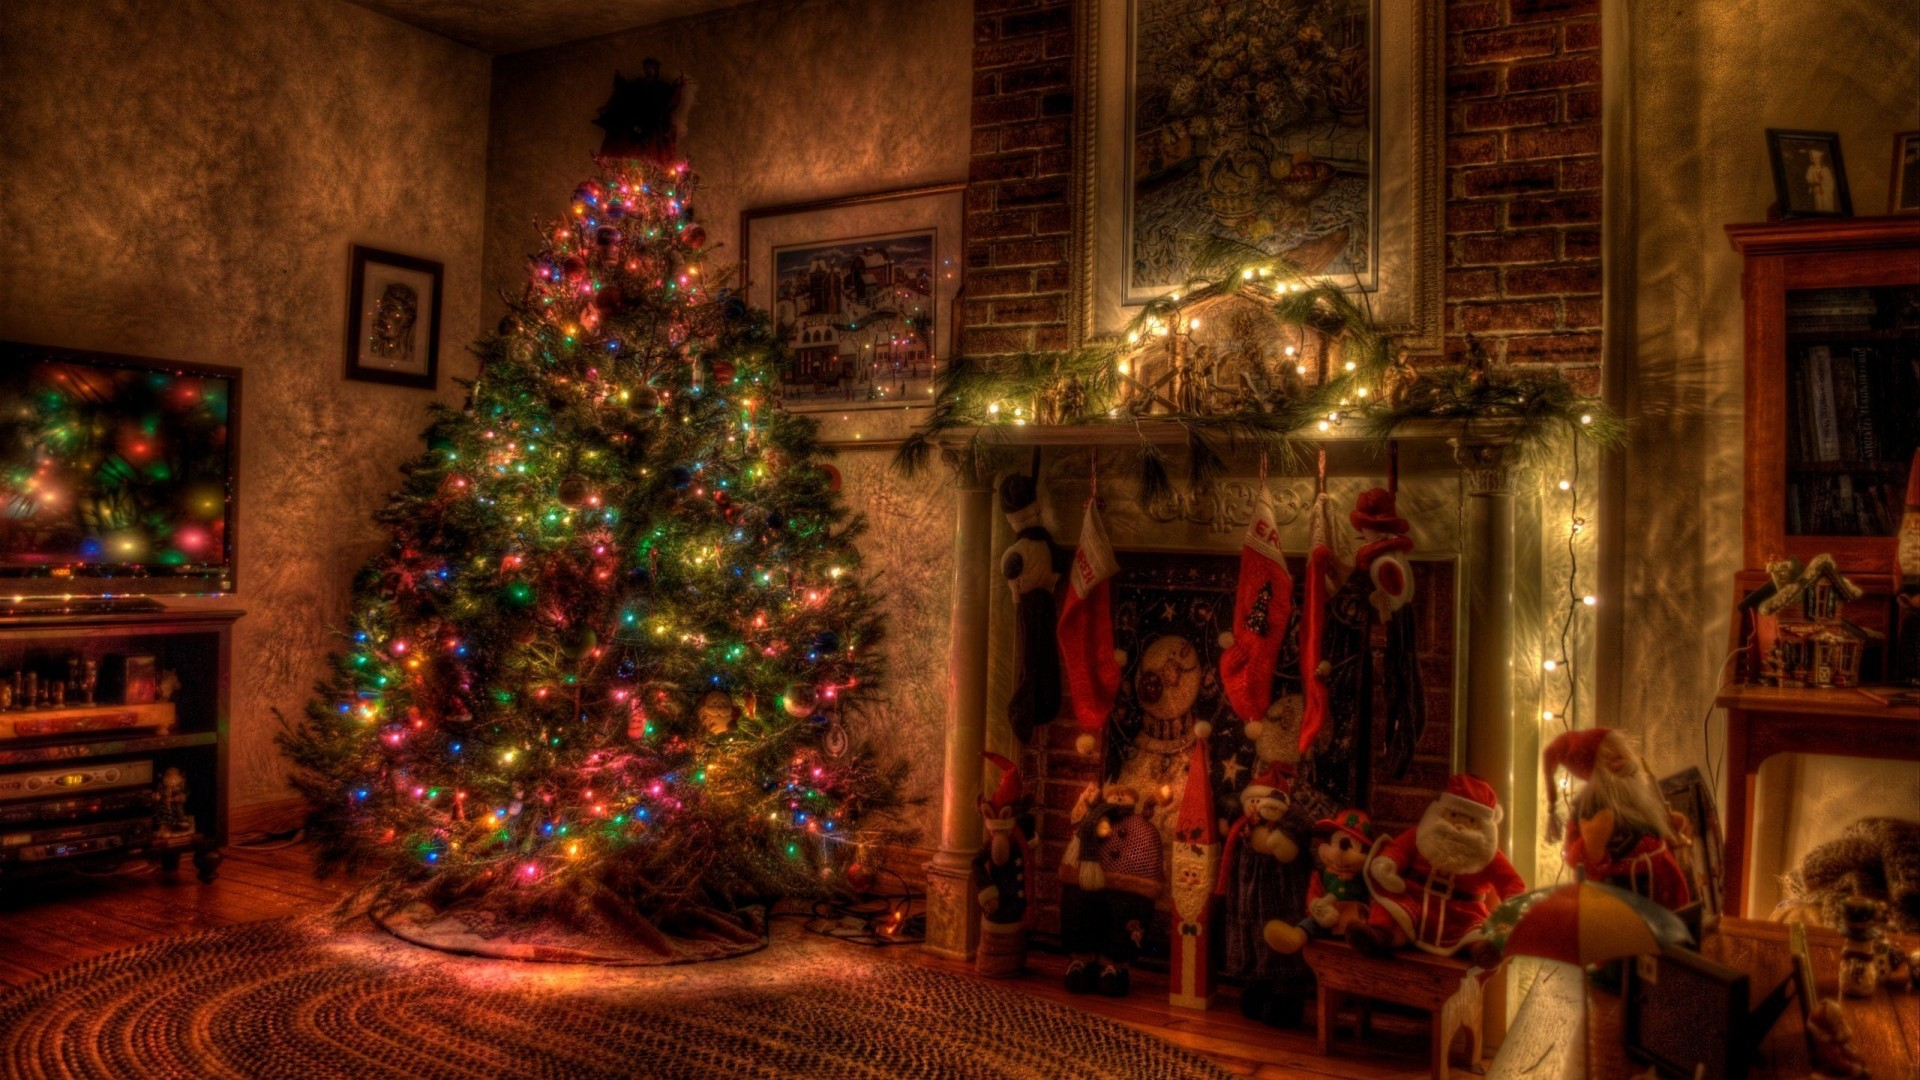 Res: 1920x1080, Download now full hd wallpaper christmas tree cozy family vintage ...